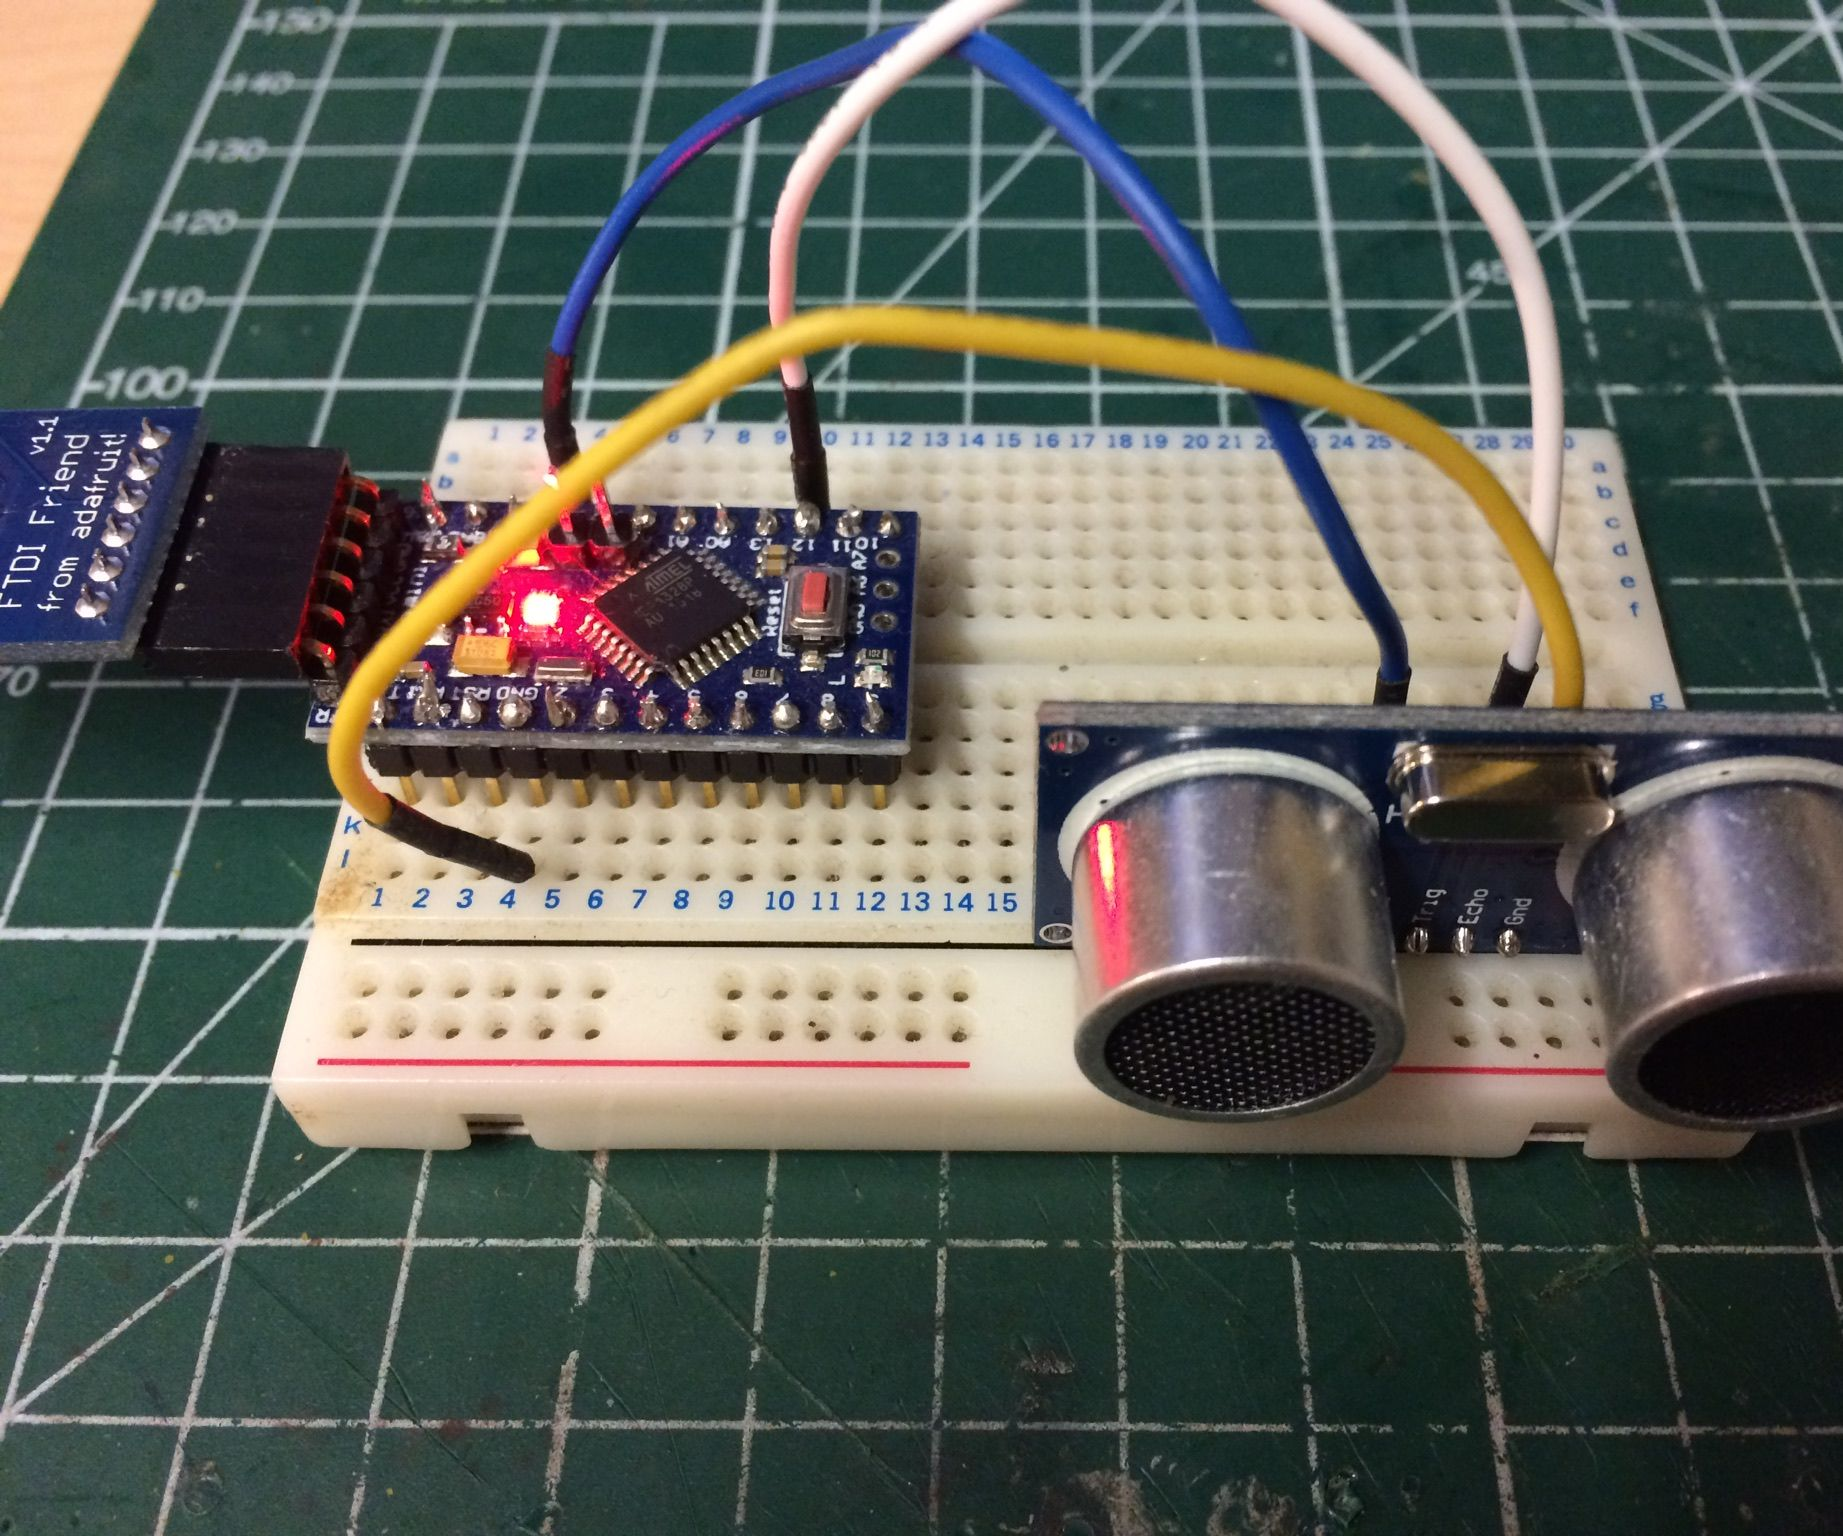 Super Simple Sonar on arduino pro-mini 5v with HC-SR04 sonar module